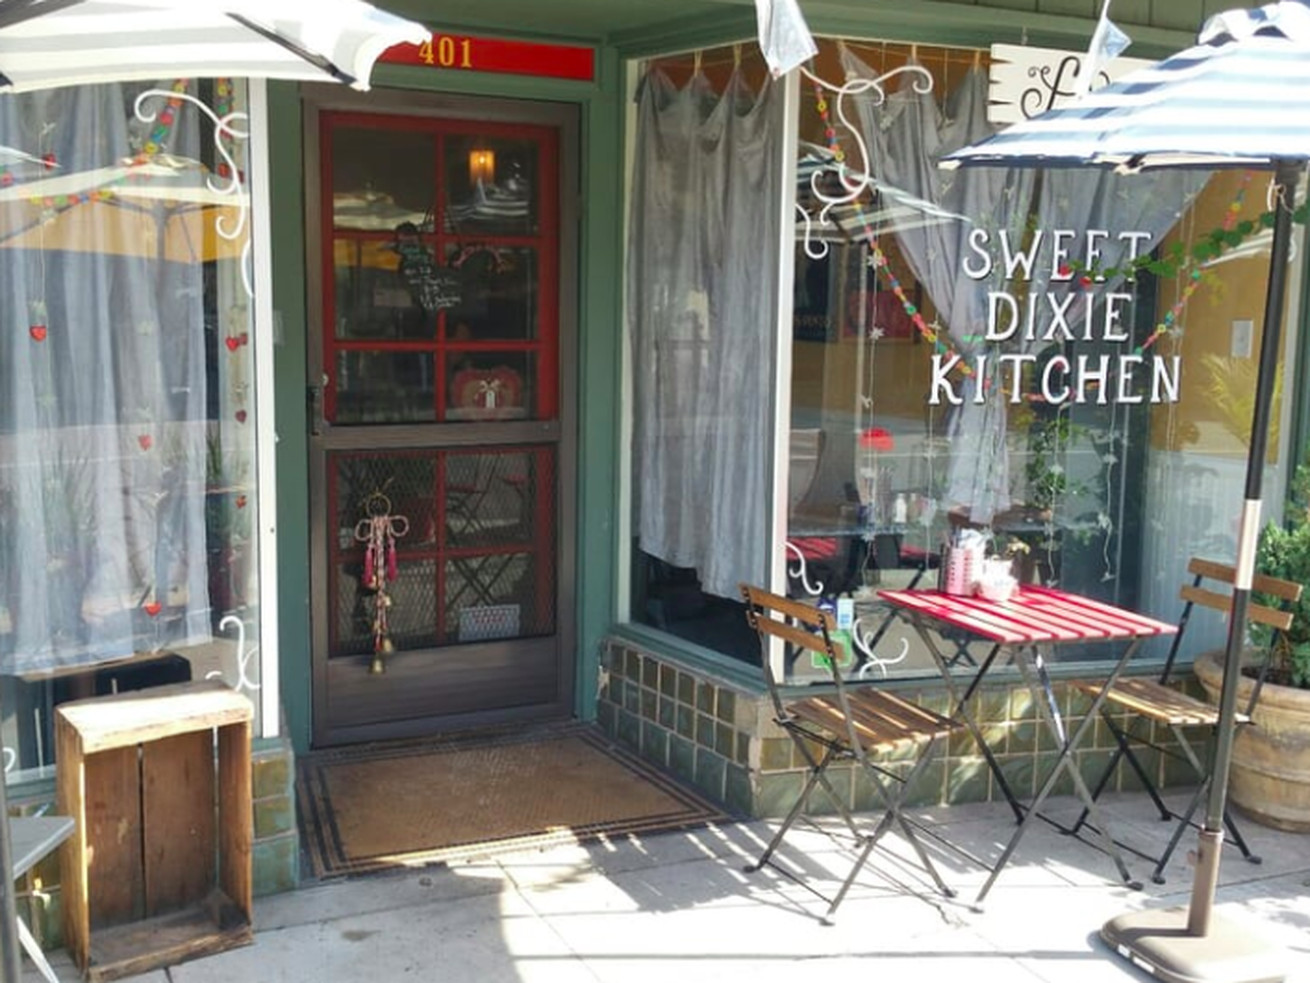 Sweet Dixie Kitchen's restaurant exterior, with tables, in Long Beach.